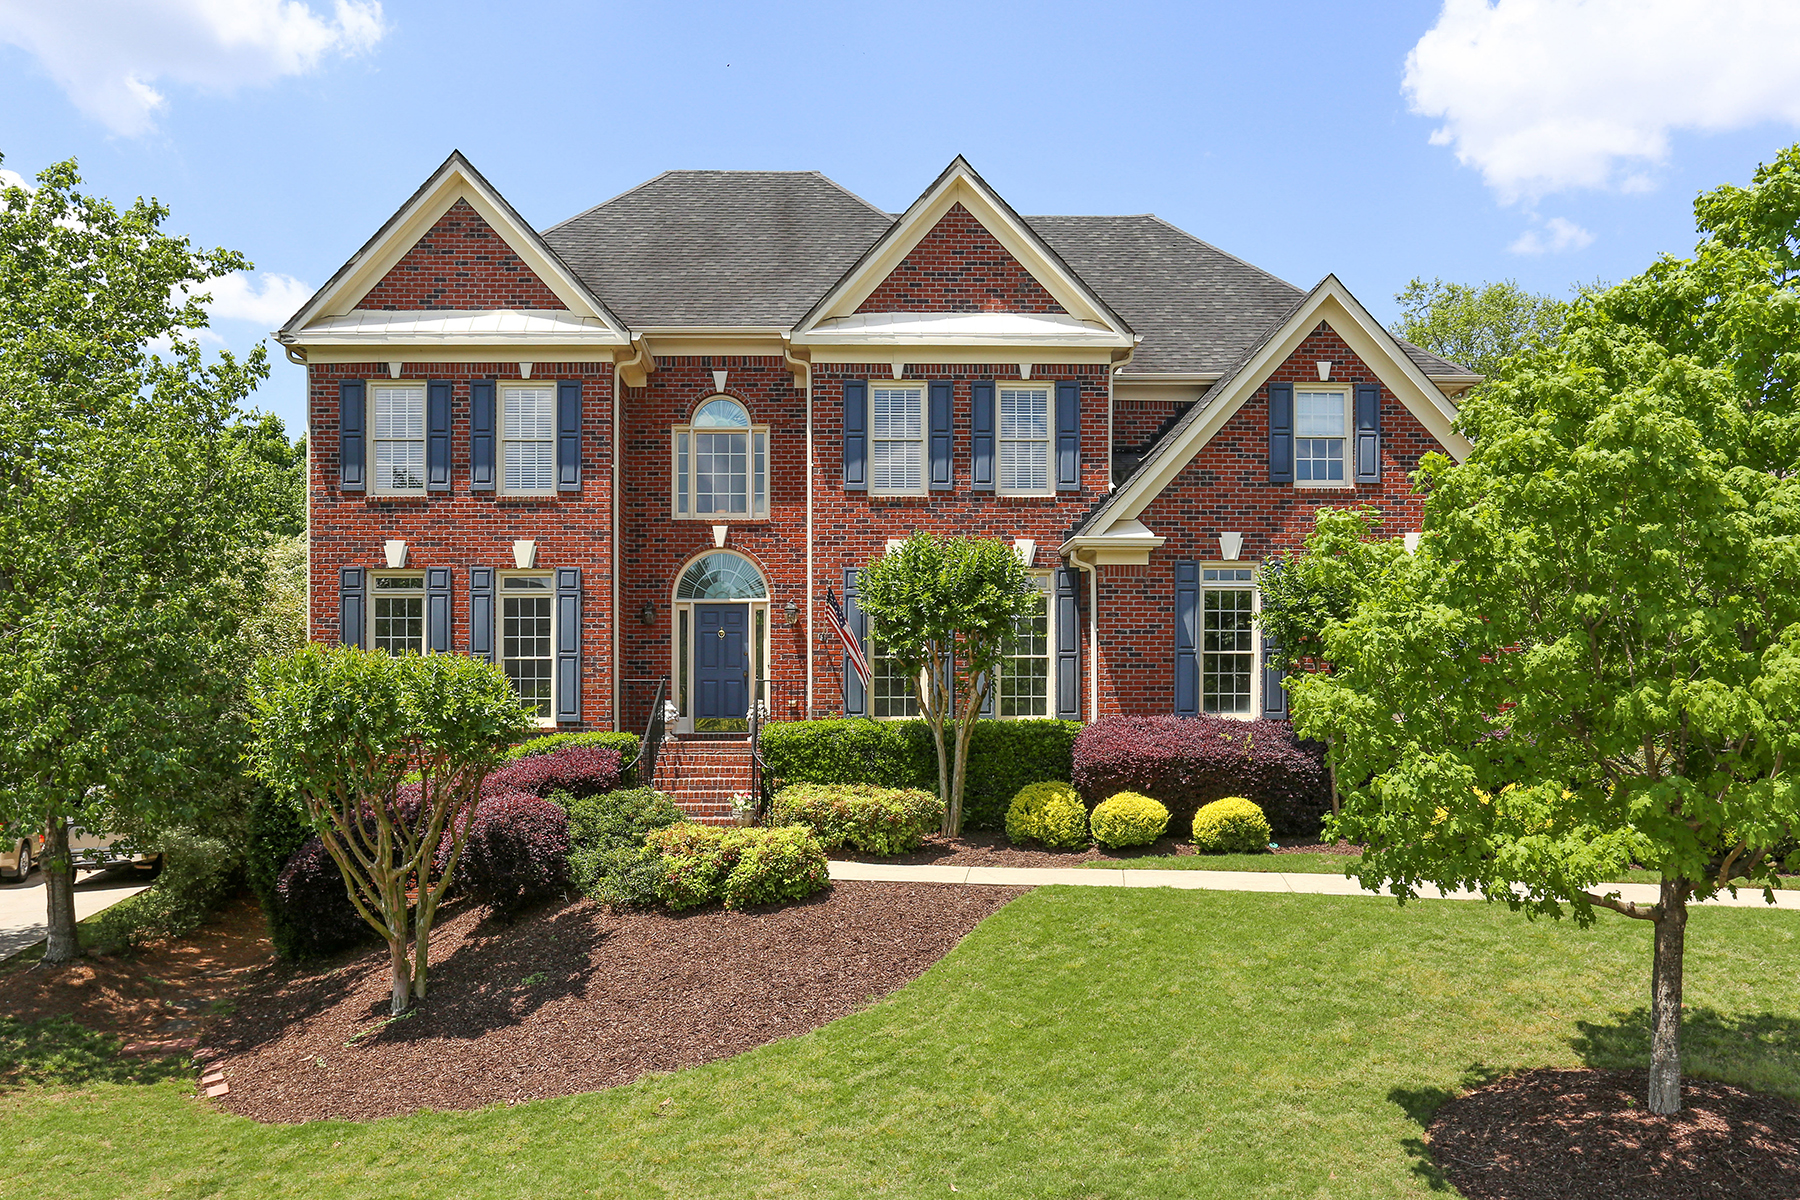 Single Family Home for Sale at Bright And Well Maintained In Alpharetta 1075 Seale Drive Alpharetta, Georgia 30022 United States